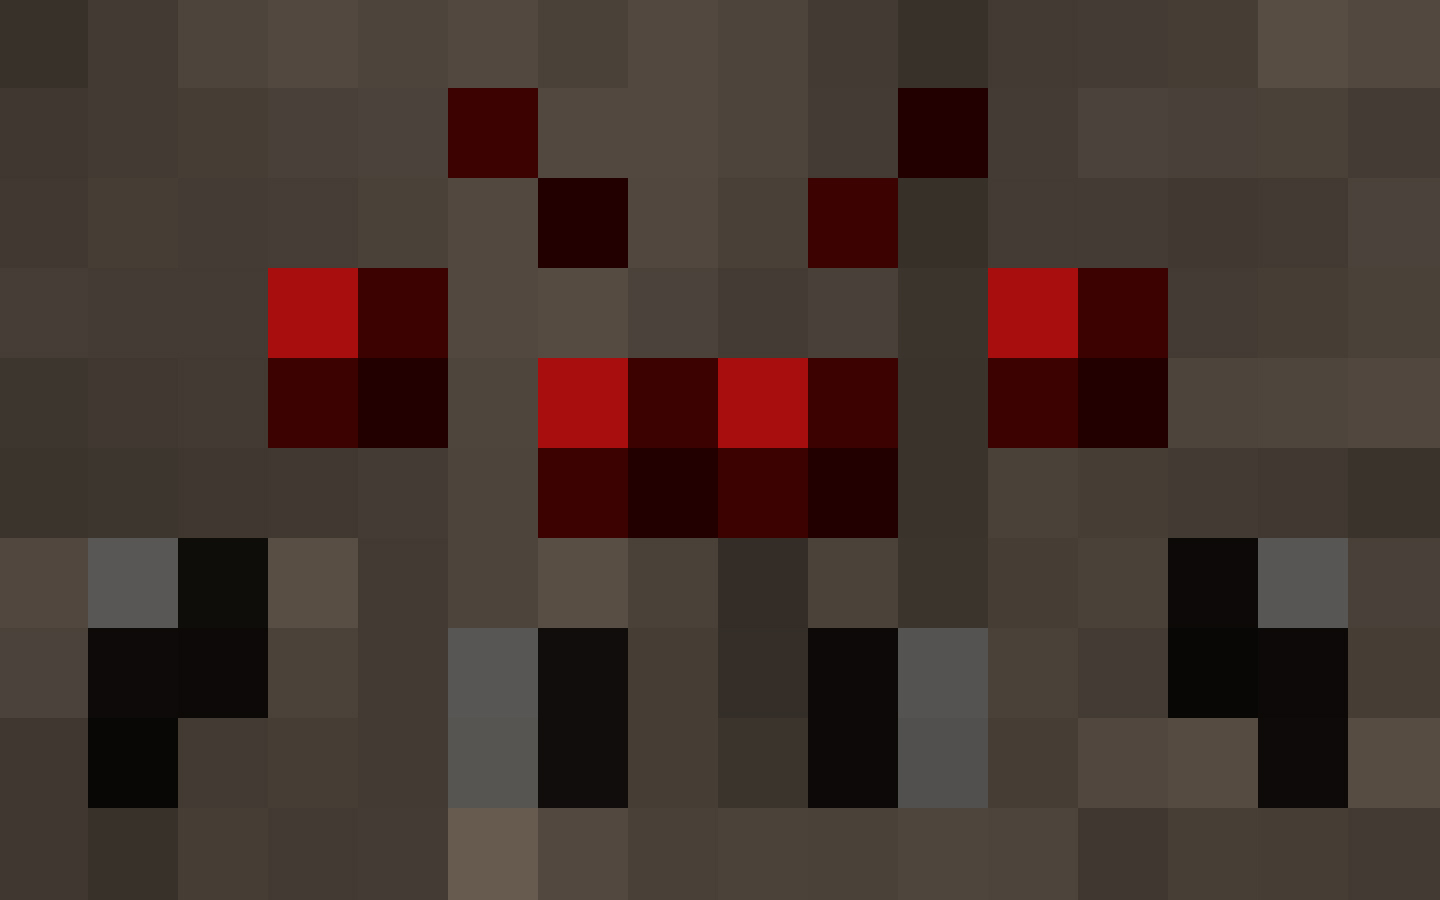 Great Wallpaper Minecraft Red - minecraft_spider_wallpaper_by_lynchmob10_09-d3jtawq  Perfect Image Reference_305429.jpg